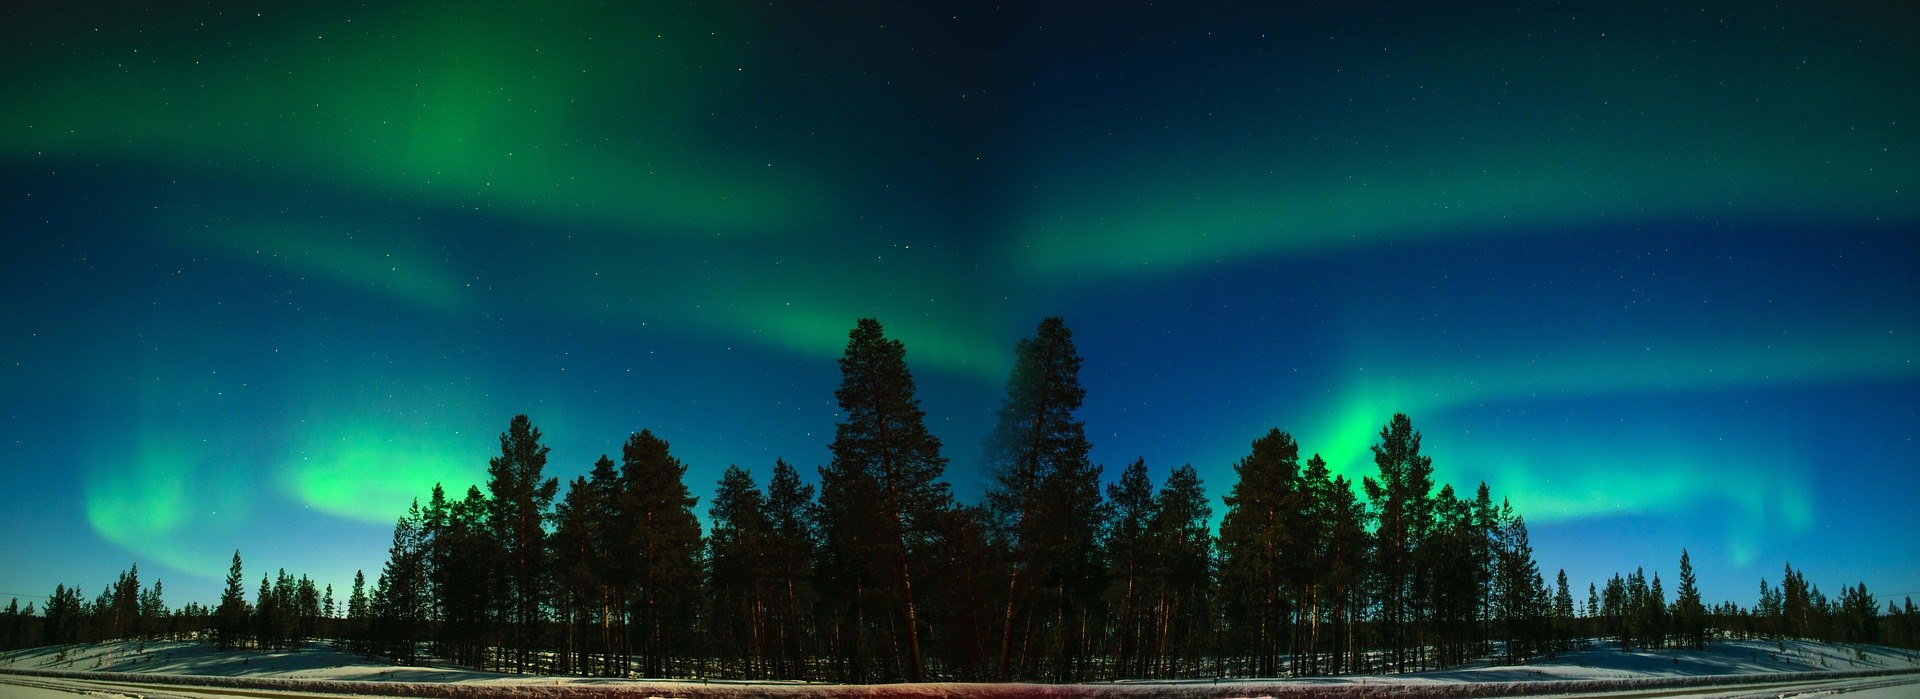 Best Places to Visit in Northern Europe - Finland